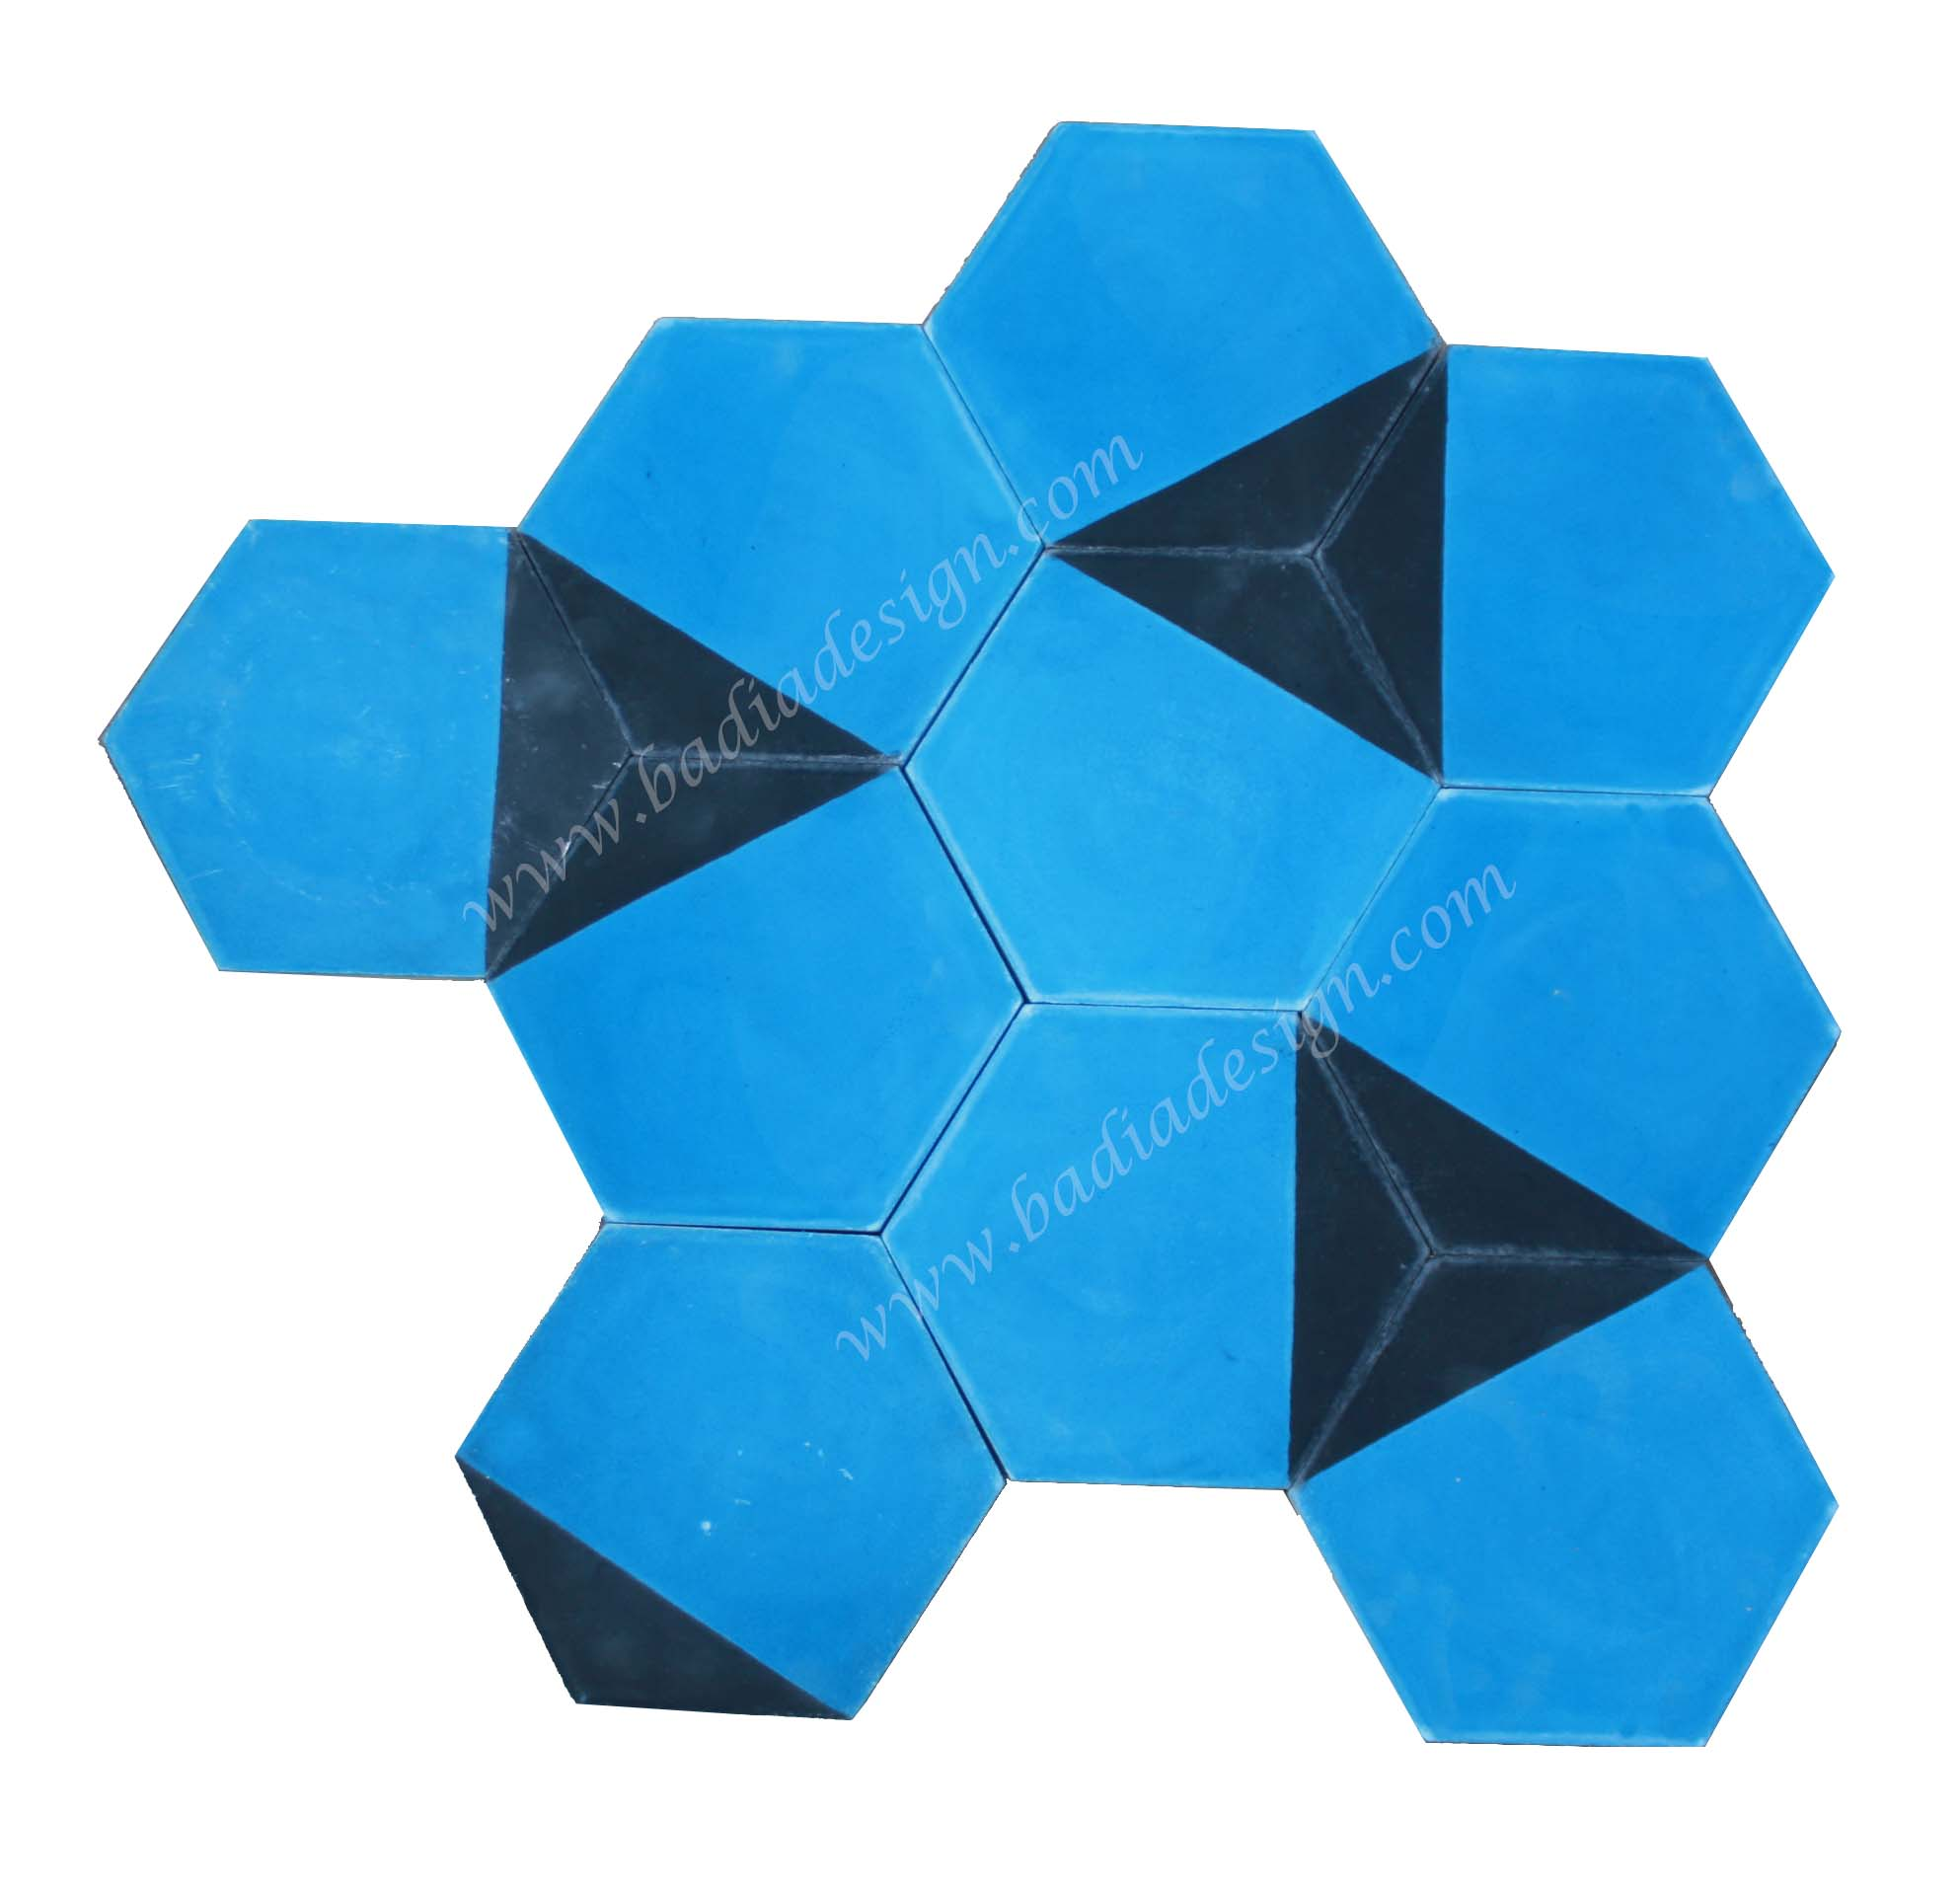 hexagon-shaped-terracotta-tile-ct101-1.jpg